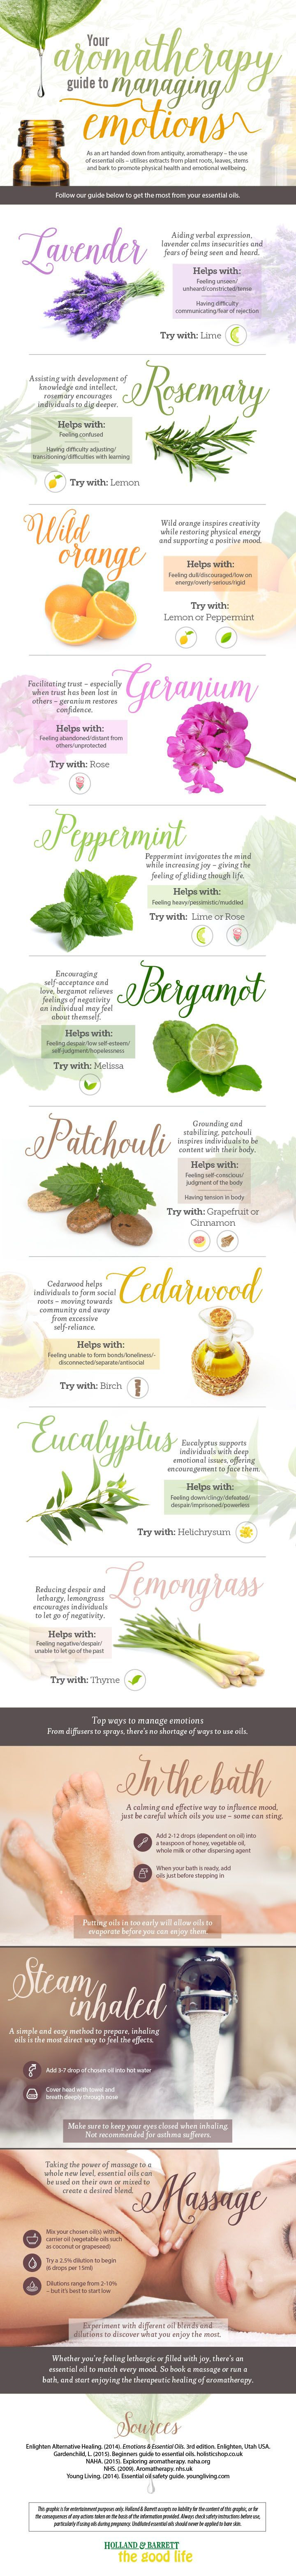 aromatherapy, scent therapy, essential oils, cedarwood, lavender, rosemary, orange, emotional health, aromatherapy and emotions